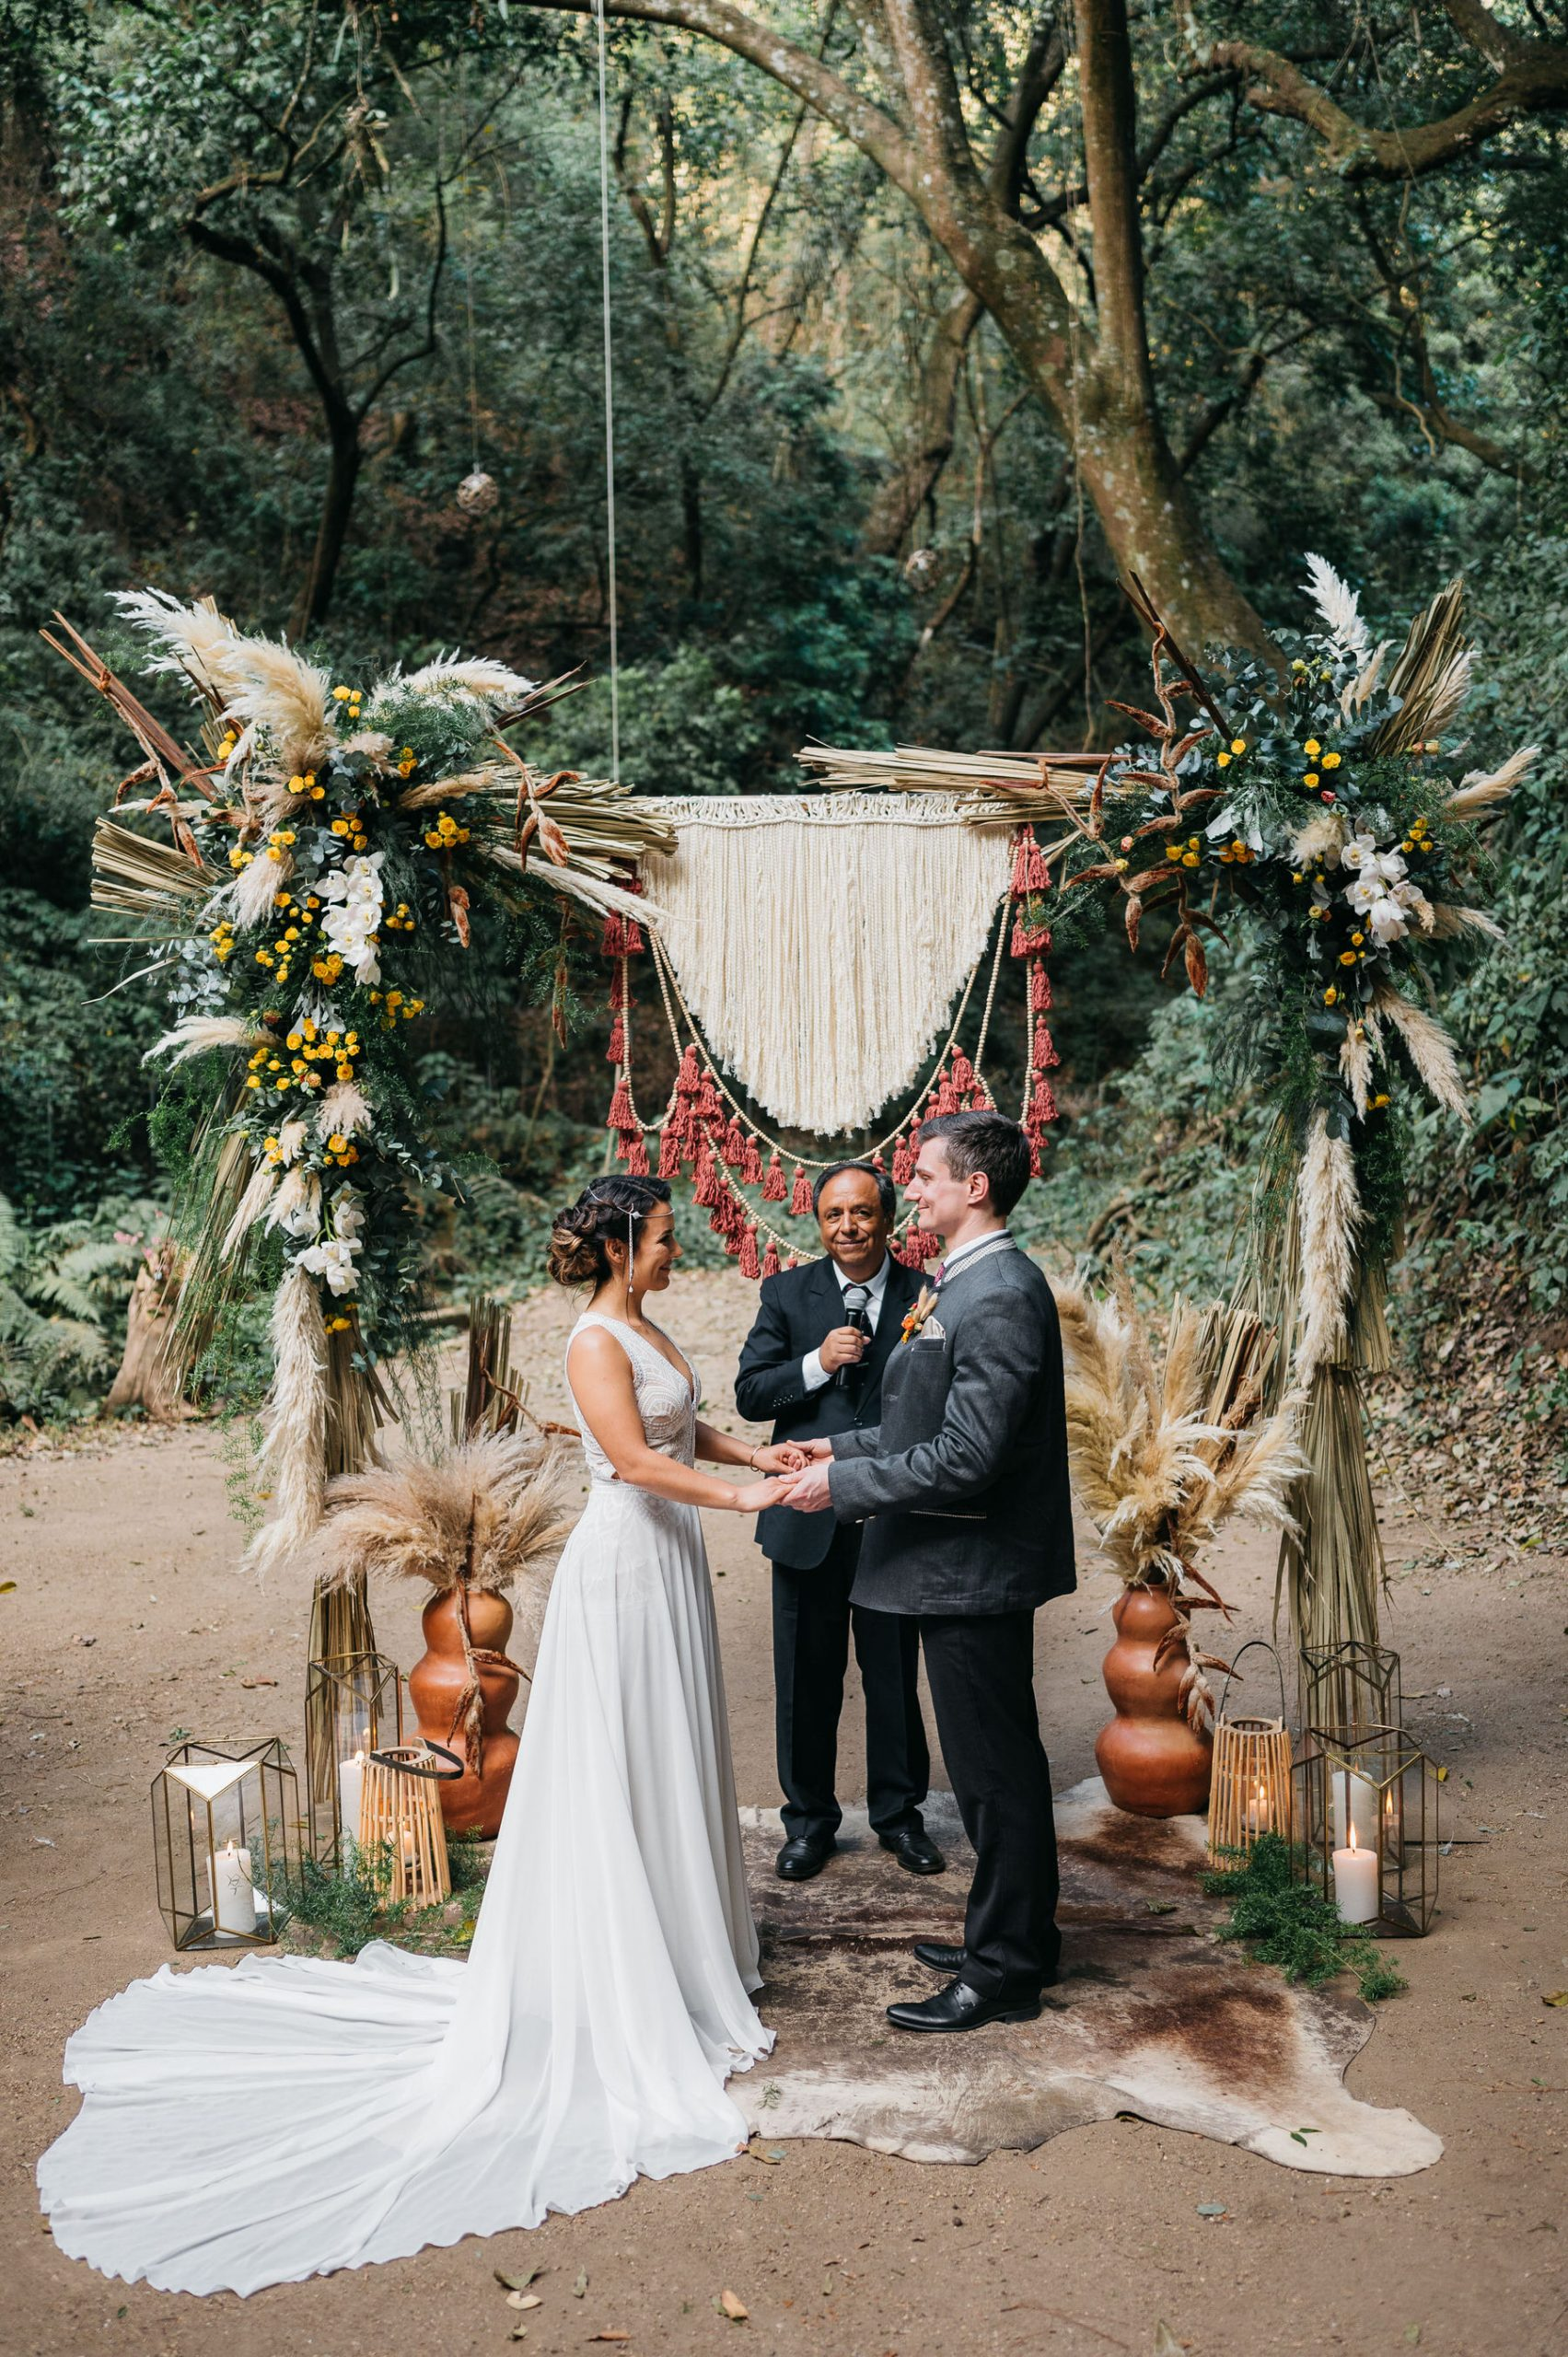 Wedding at Casa Blanca Glamping Antigua Guatemala